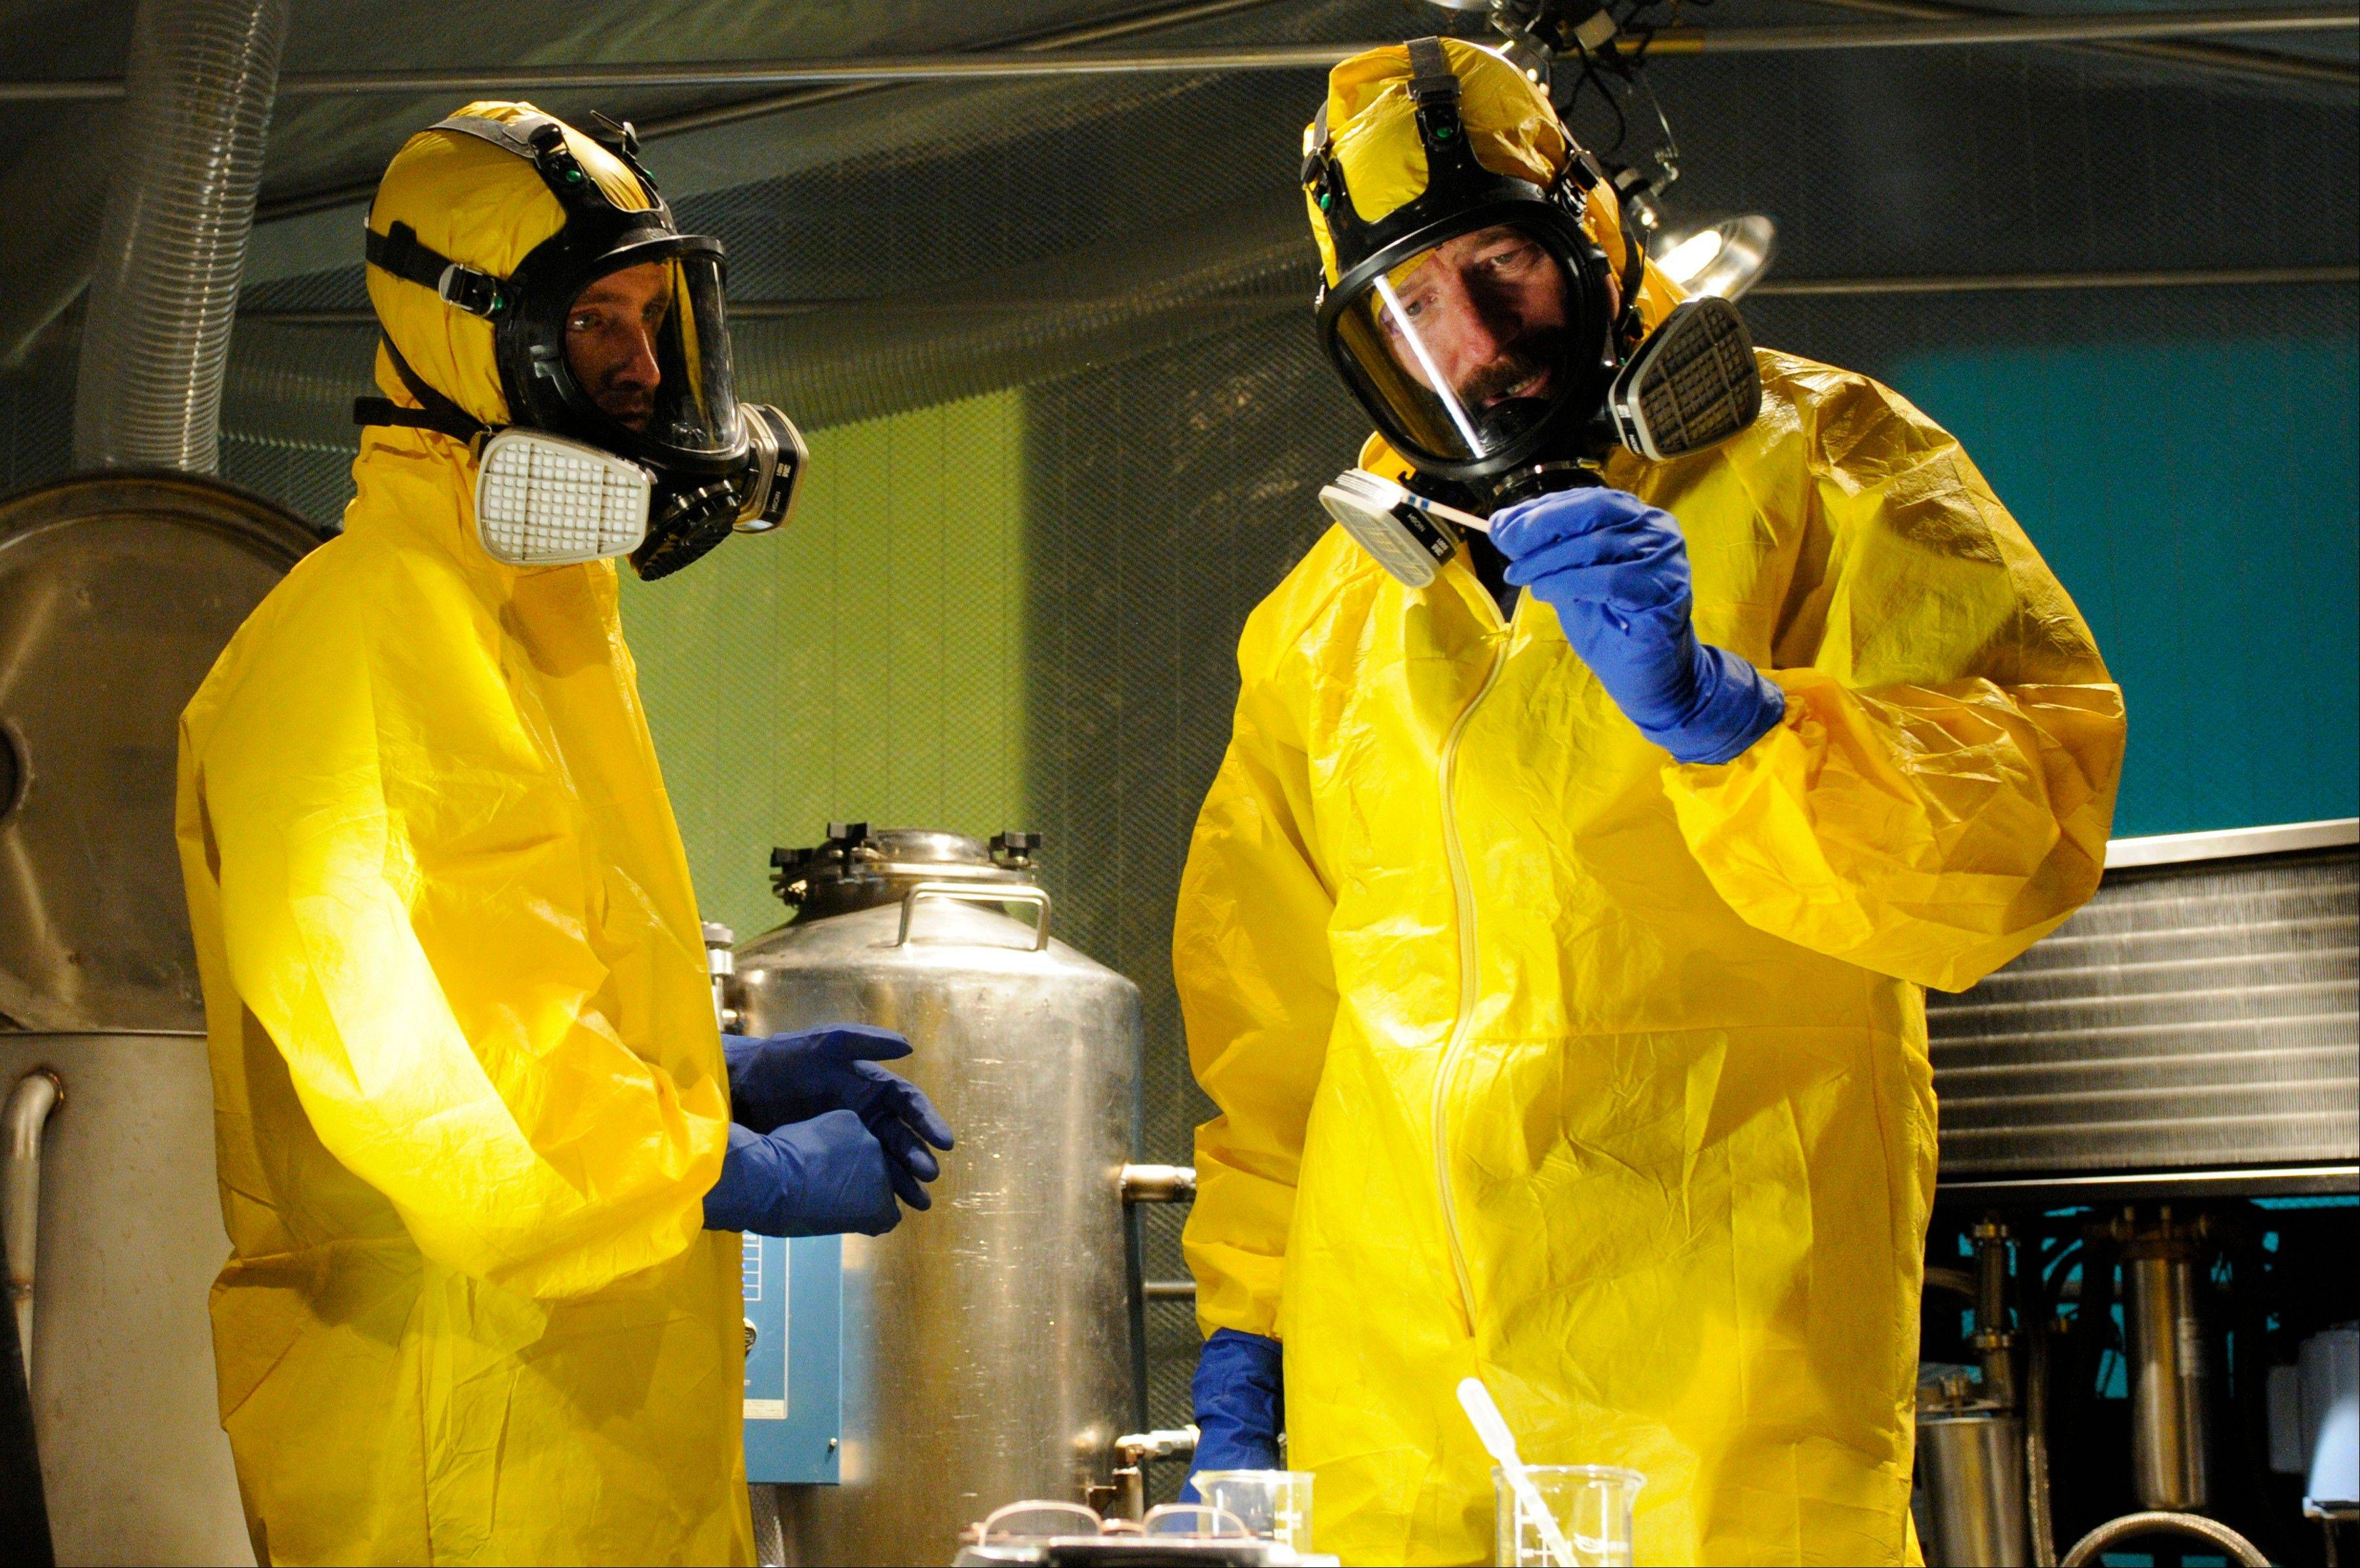 This image released by AMC shows Jesse Pinkman, played by Aaron Paul, left, and Walter White, played by Bryan Cranston, cooking meth in a home being fumigated in the fifth season of �Breaking Bad.� The series finale of the popular drama series aired on Sunday.